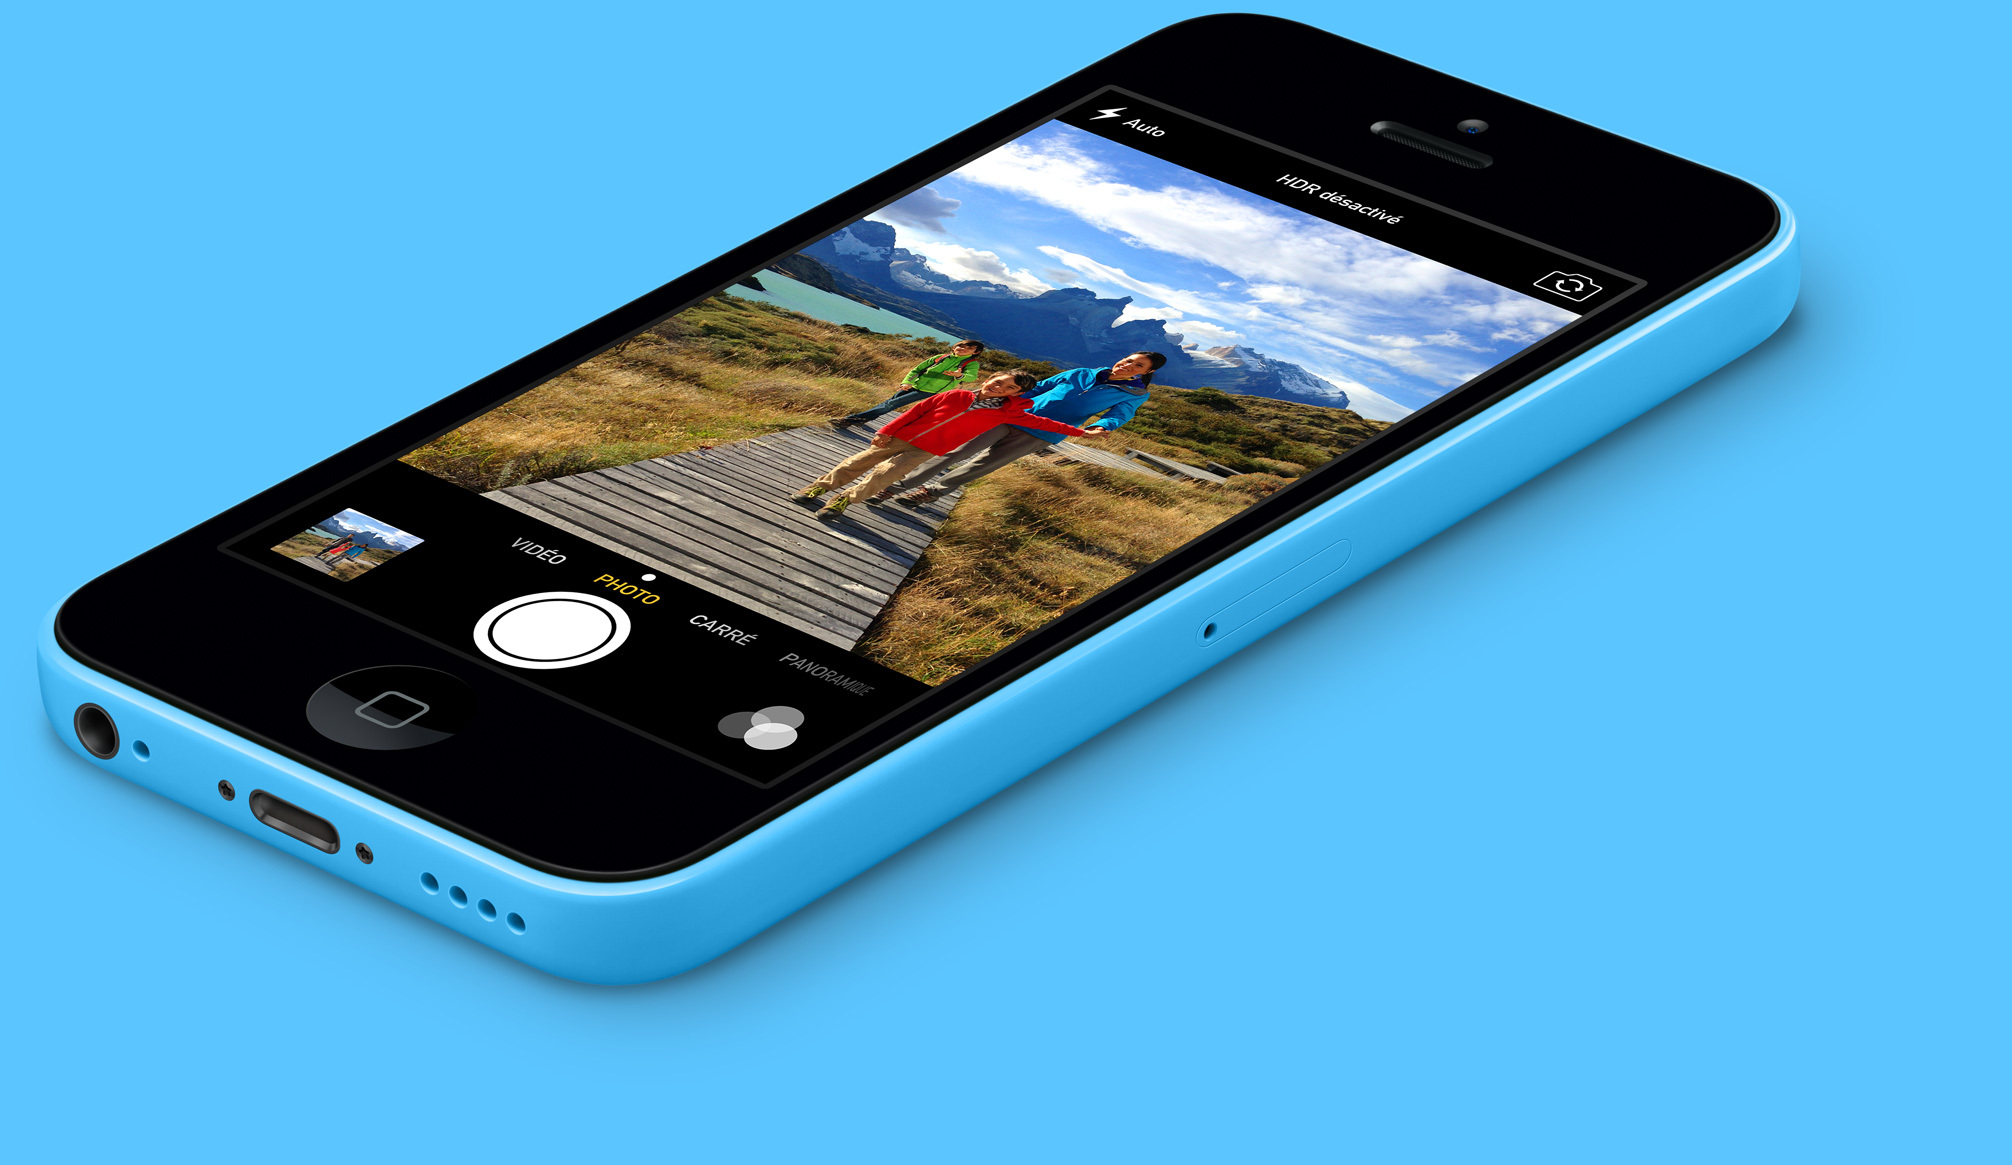 eb1d50998f3 Apple iPhone 5c 16GB Smartphone - Ting - Blue - Mint Condition : Used Cell  Phones, Cheap Ting Cell Phones, Used Ting Phones : Cellular Country